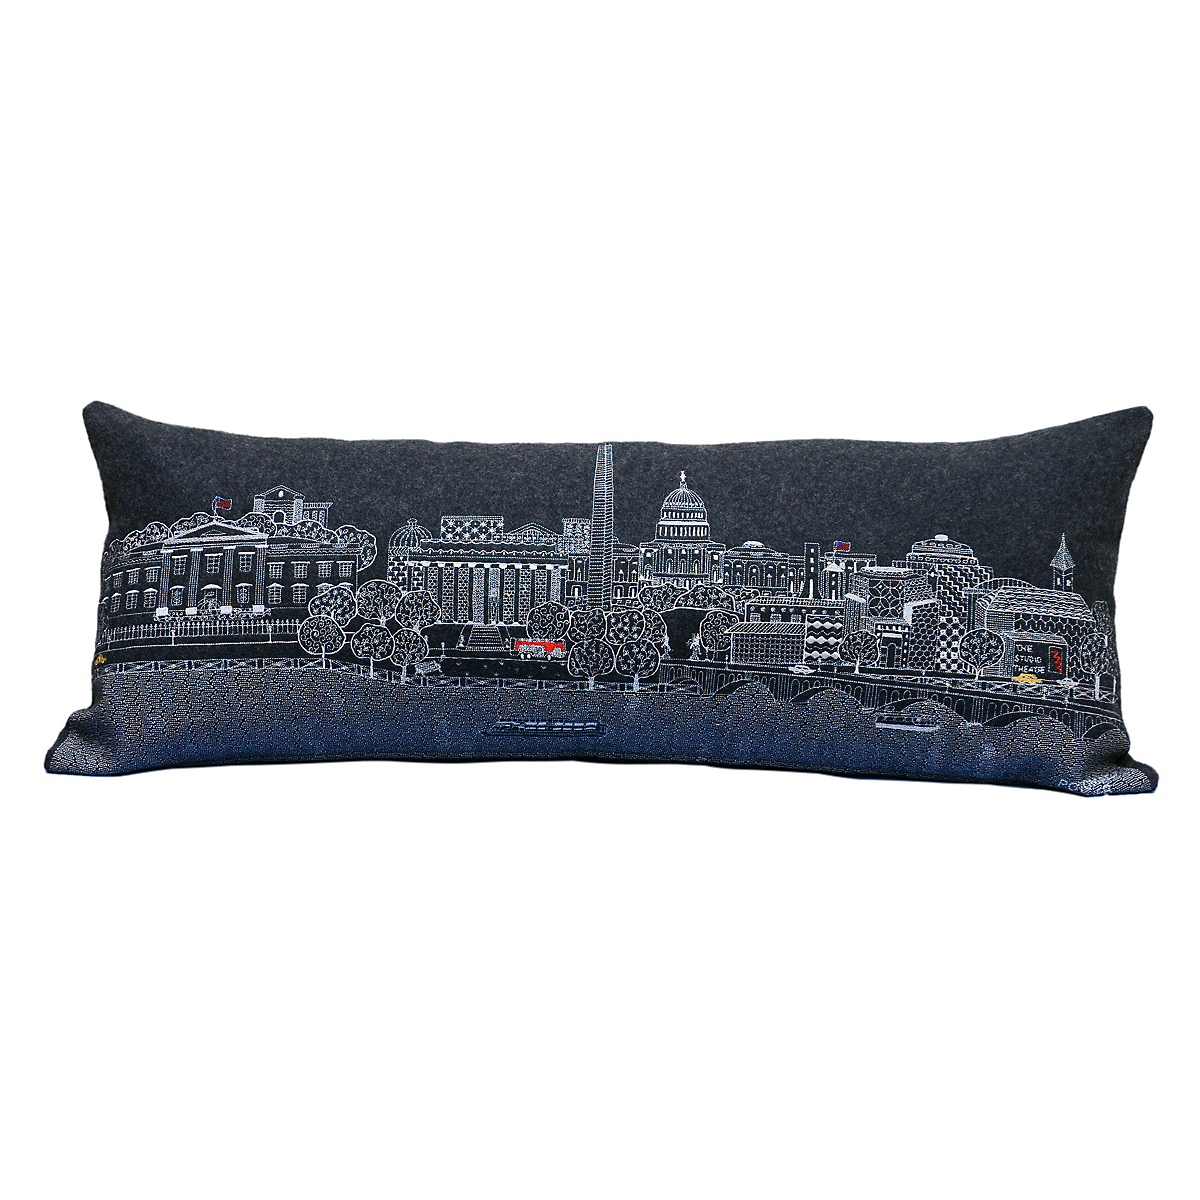 City Skyline Pillow, Washington, D.C.